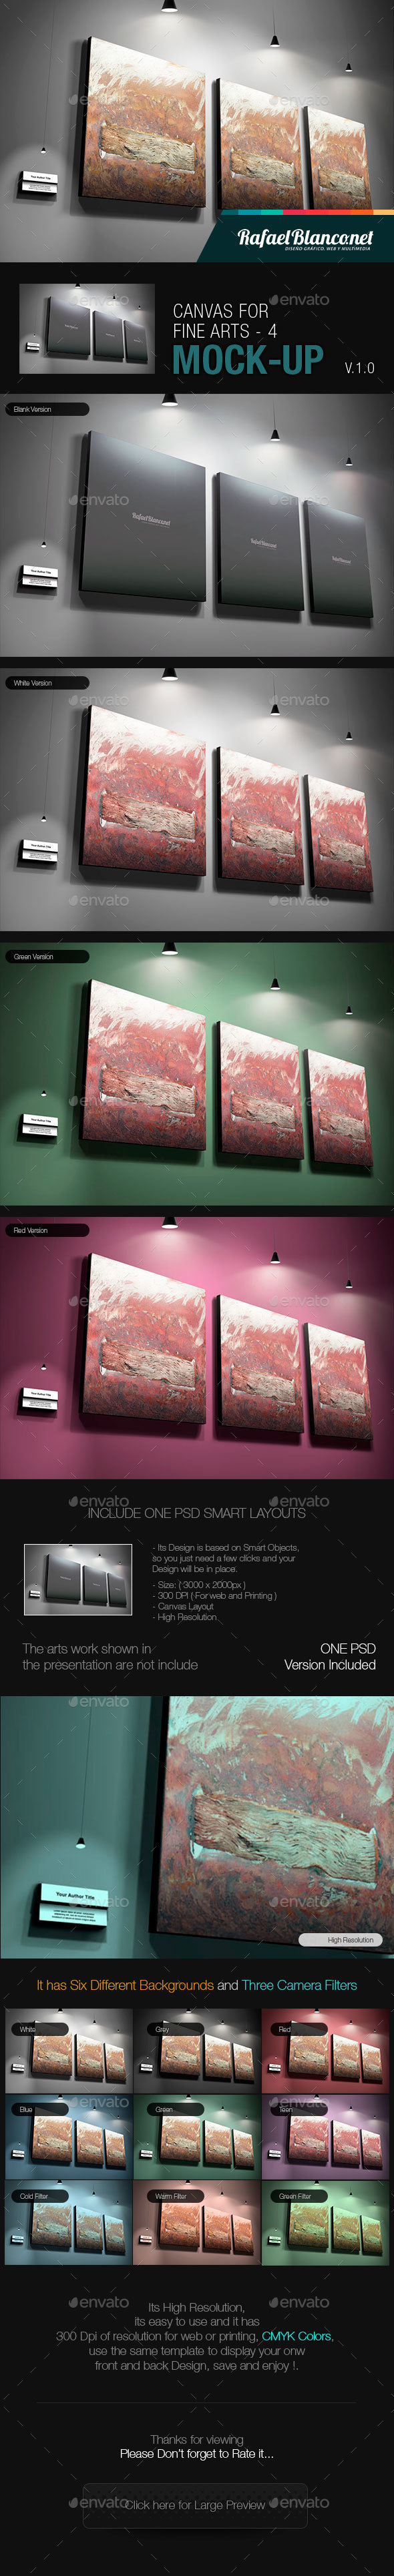 Canvas for Fine Arts Mock-Up 4 - Miscellaneous Displays